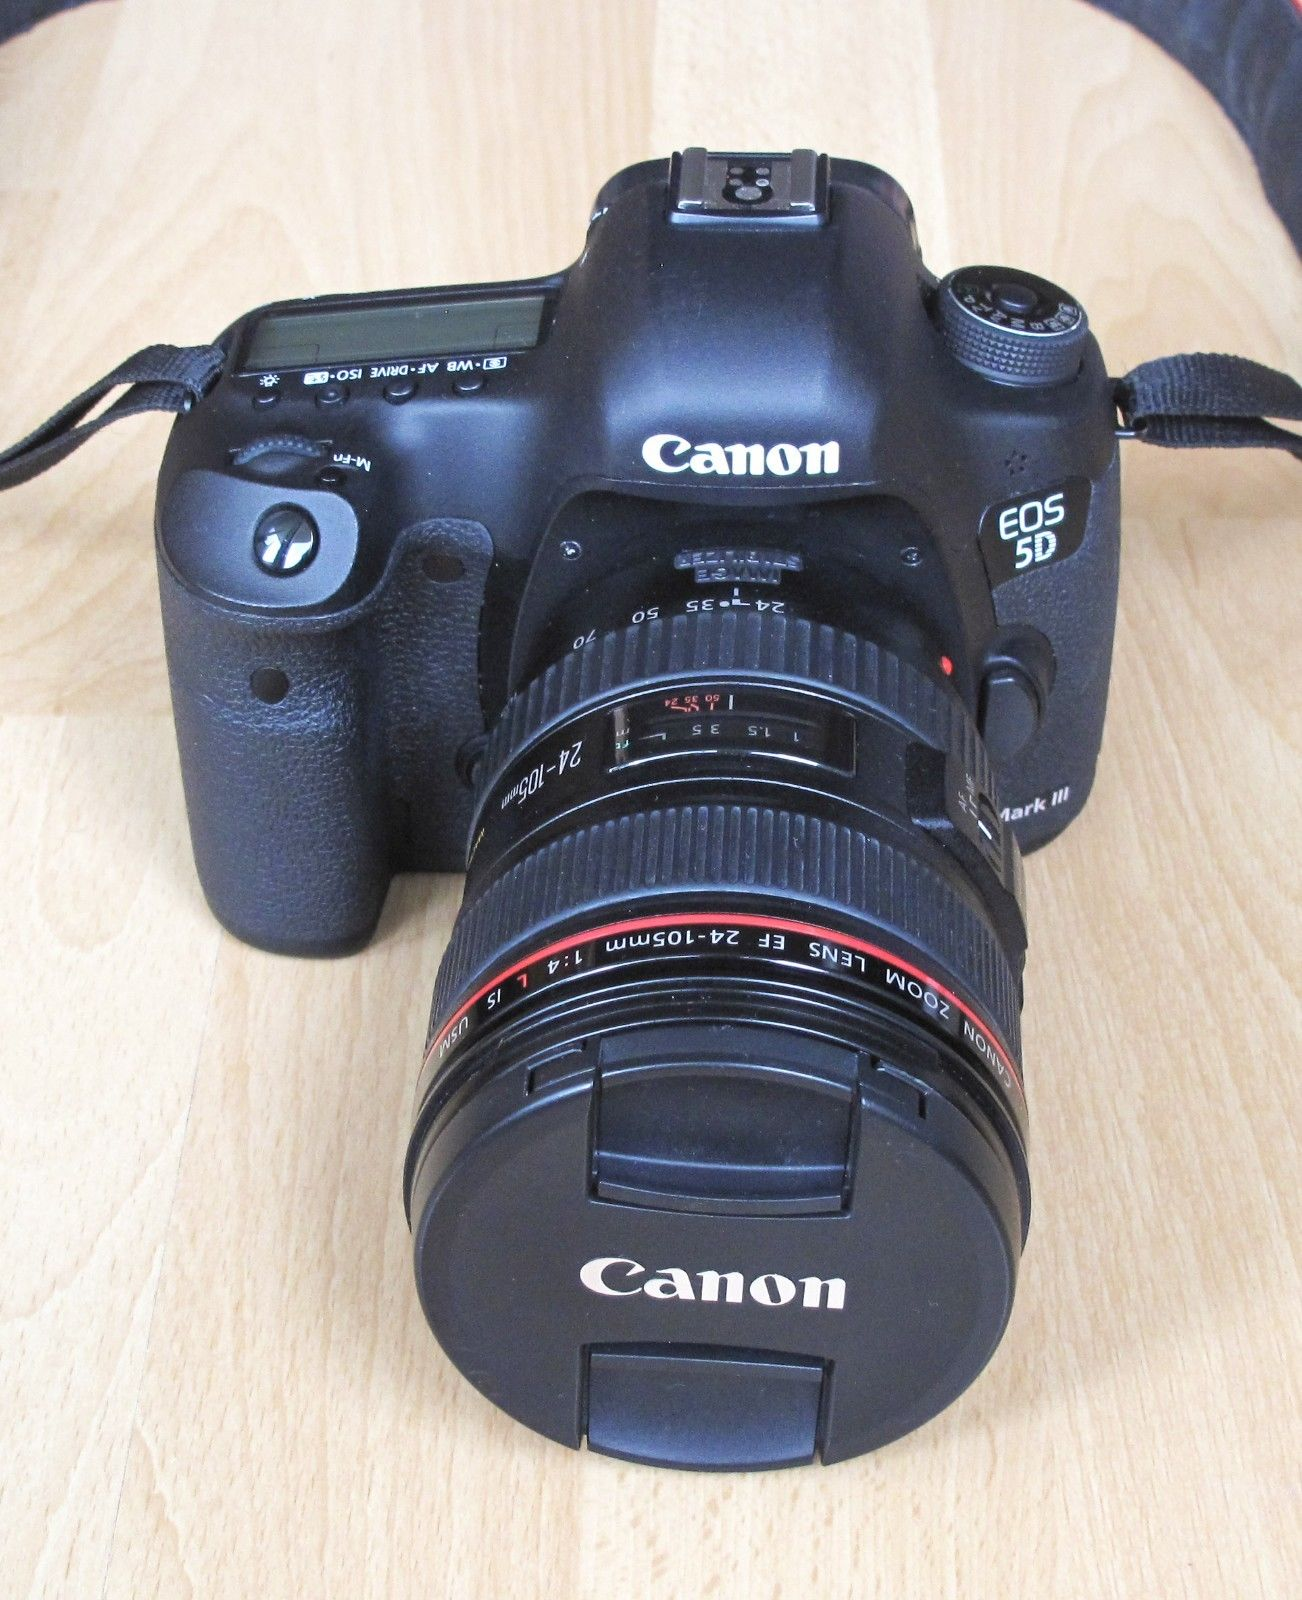 Canon EOS 5D Mark III + Canon EF 24-105mm f4.0 L IS USM Kit